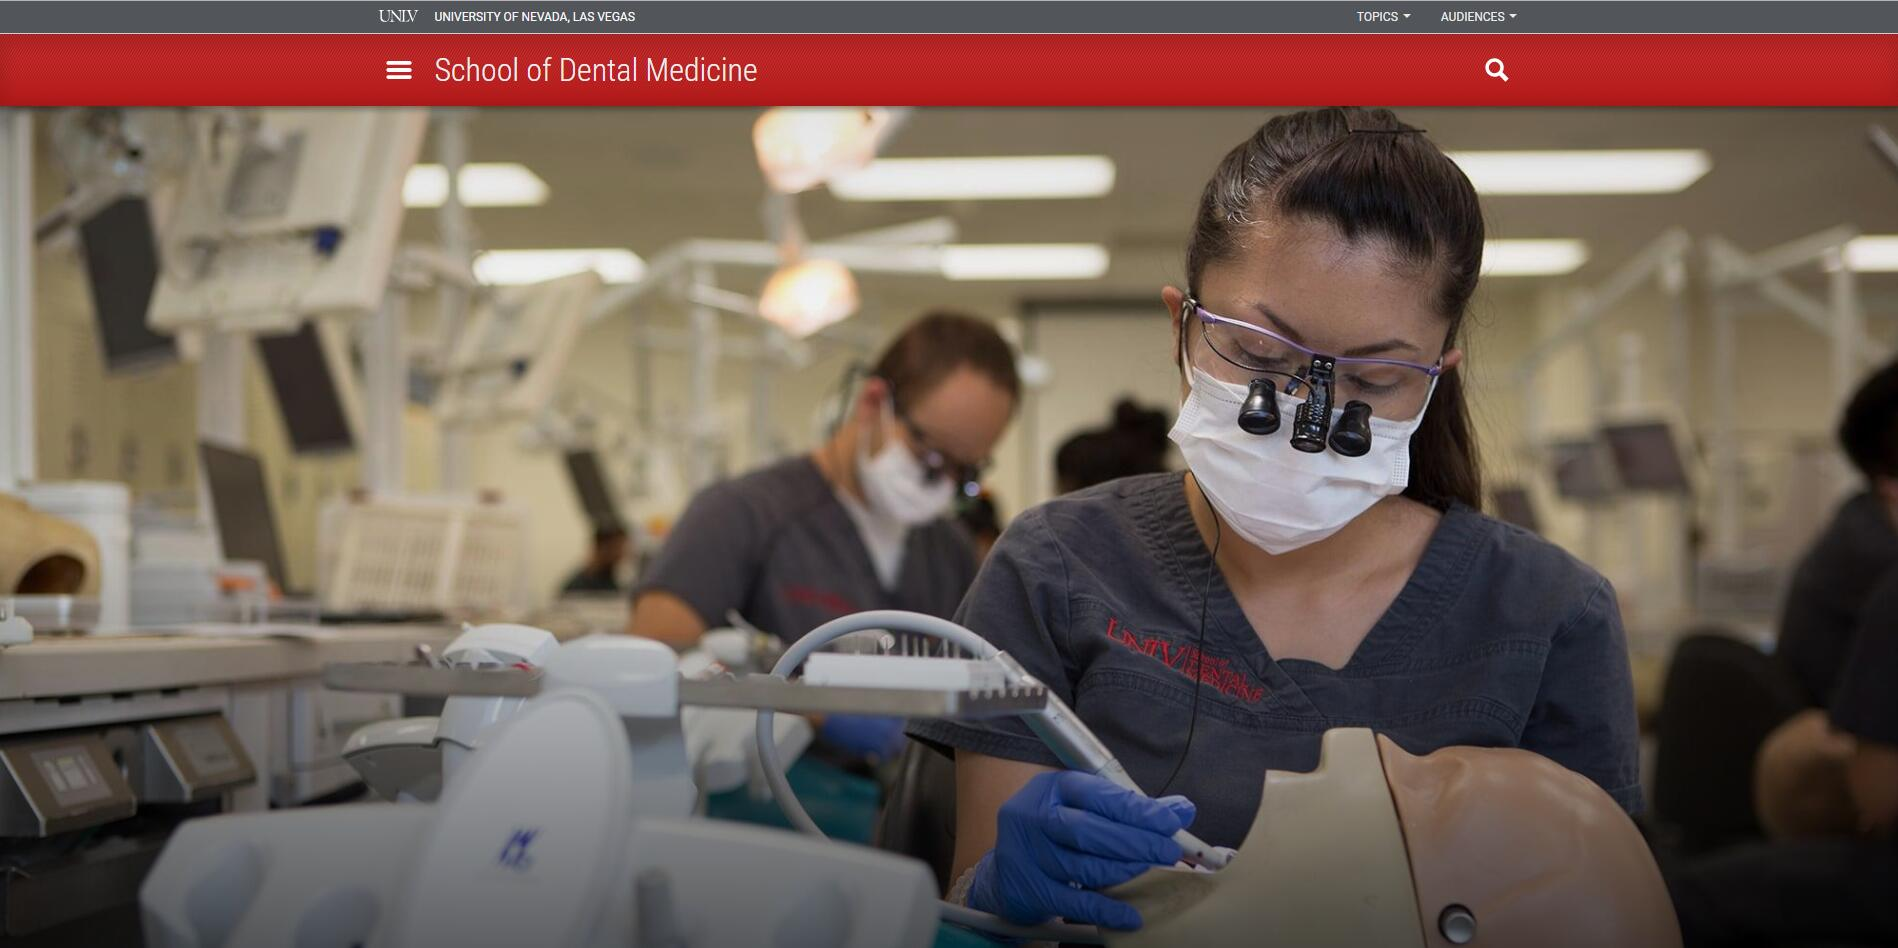 University of Nevada at Las Vegas School of Dental Medicine